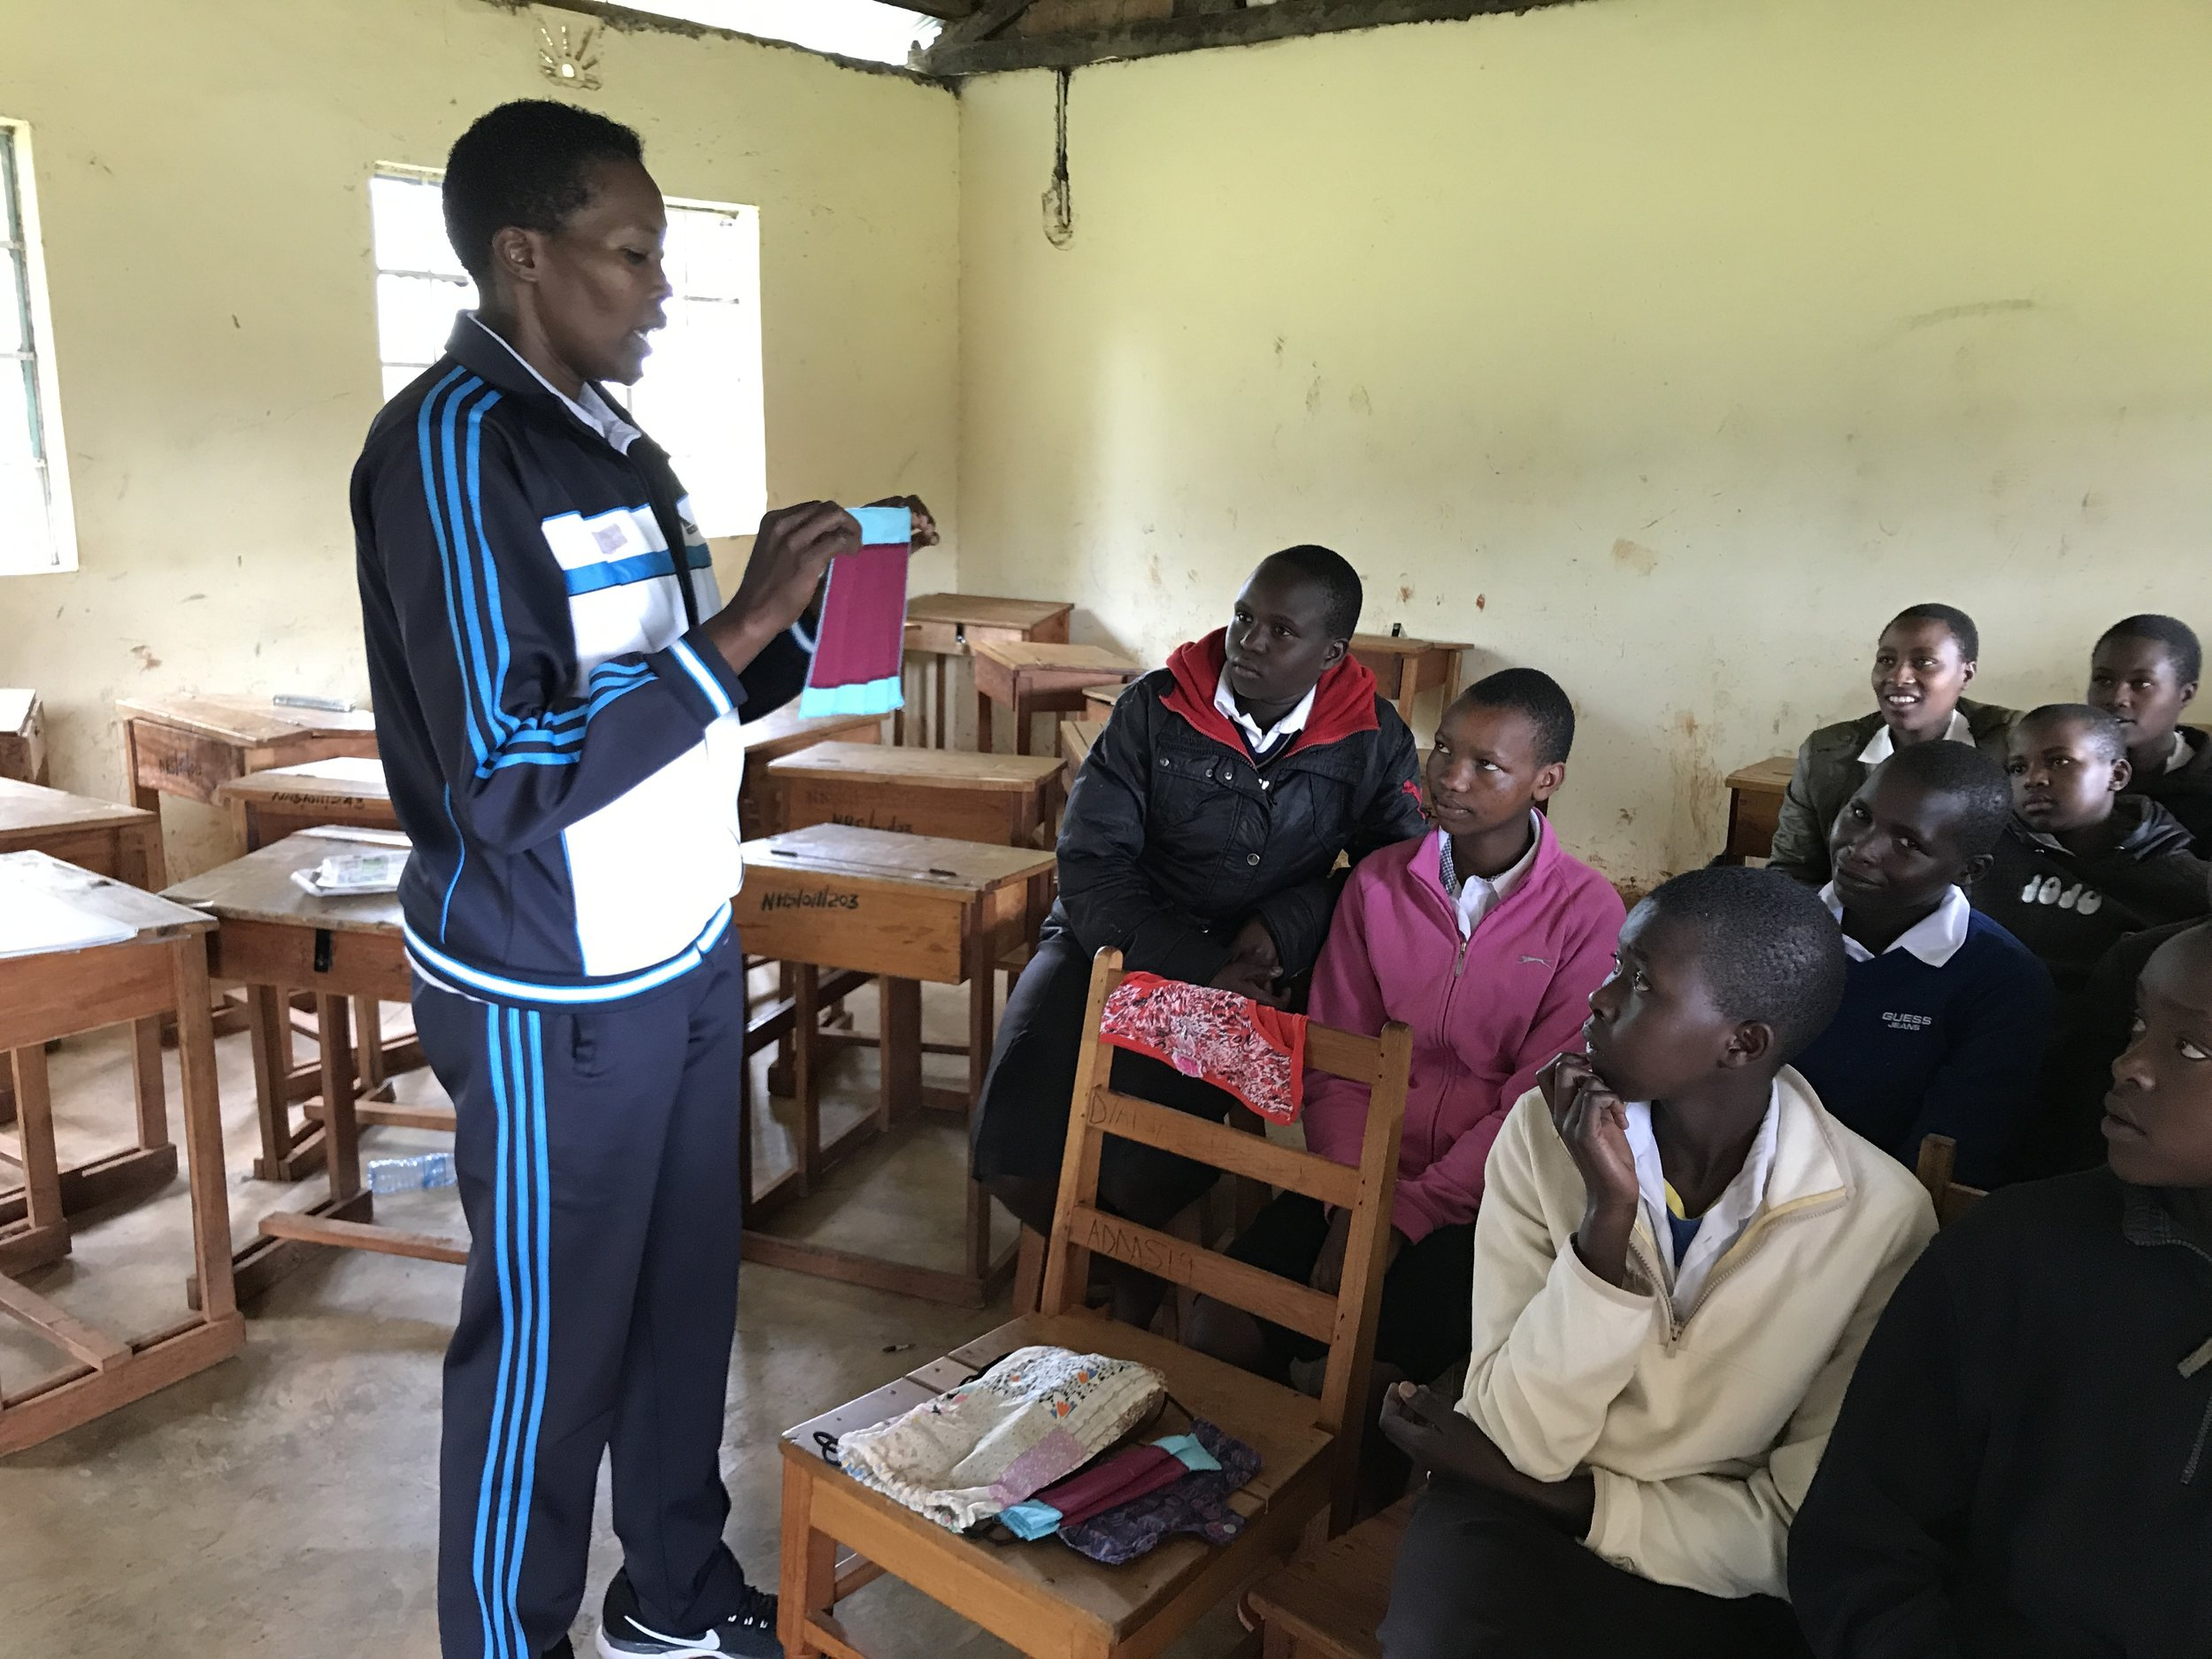 October 2017: Edinah explaining how to use the menstrual kits to girls in a rural school.